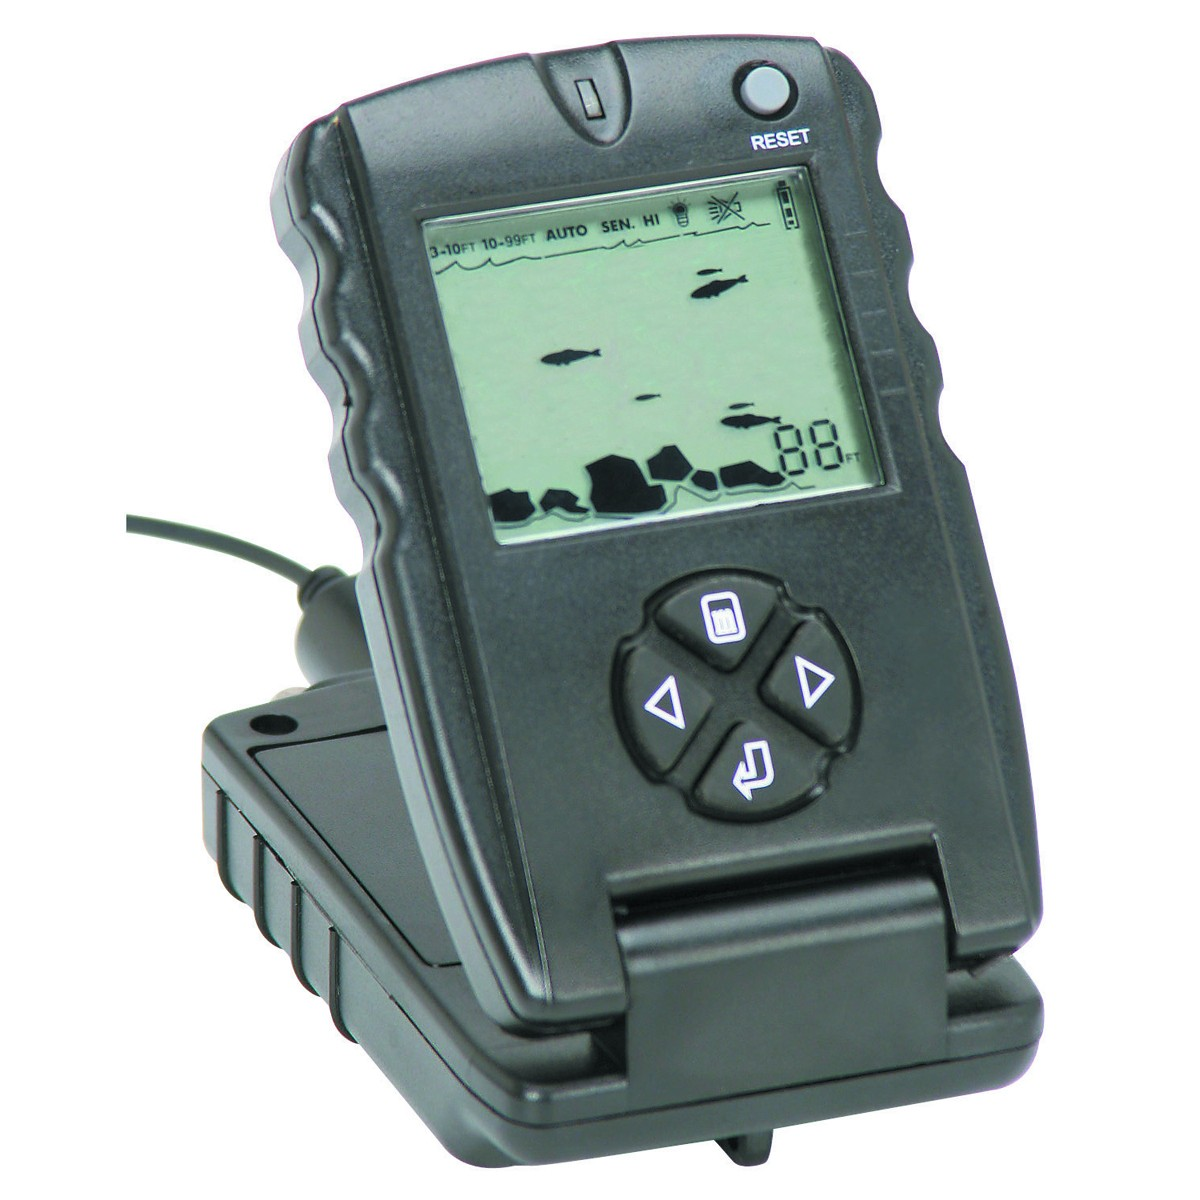 humminbird portable fish finder - about types of fish, Fish Finder